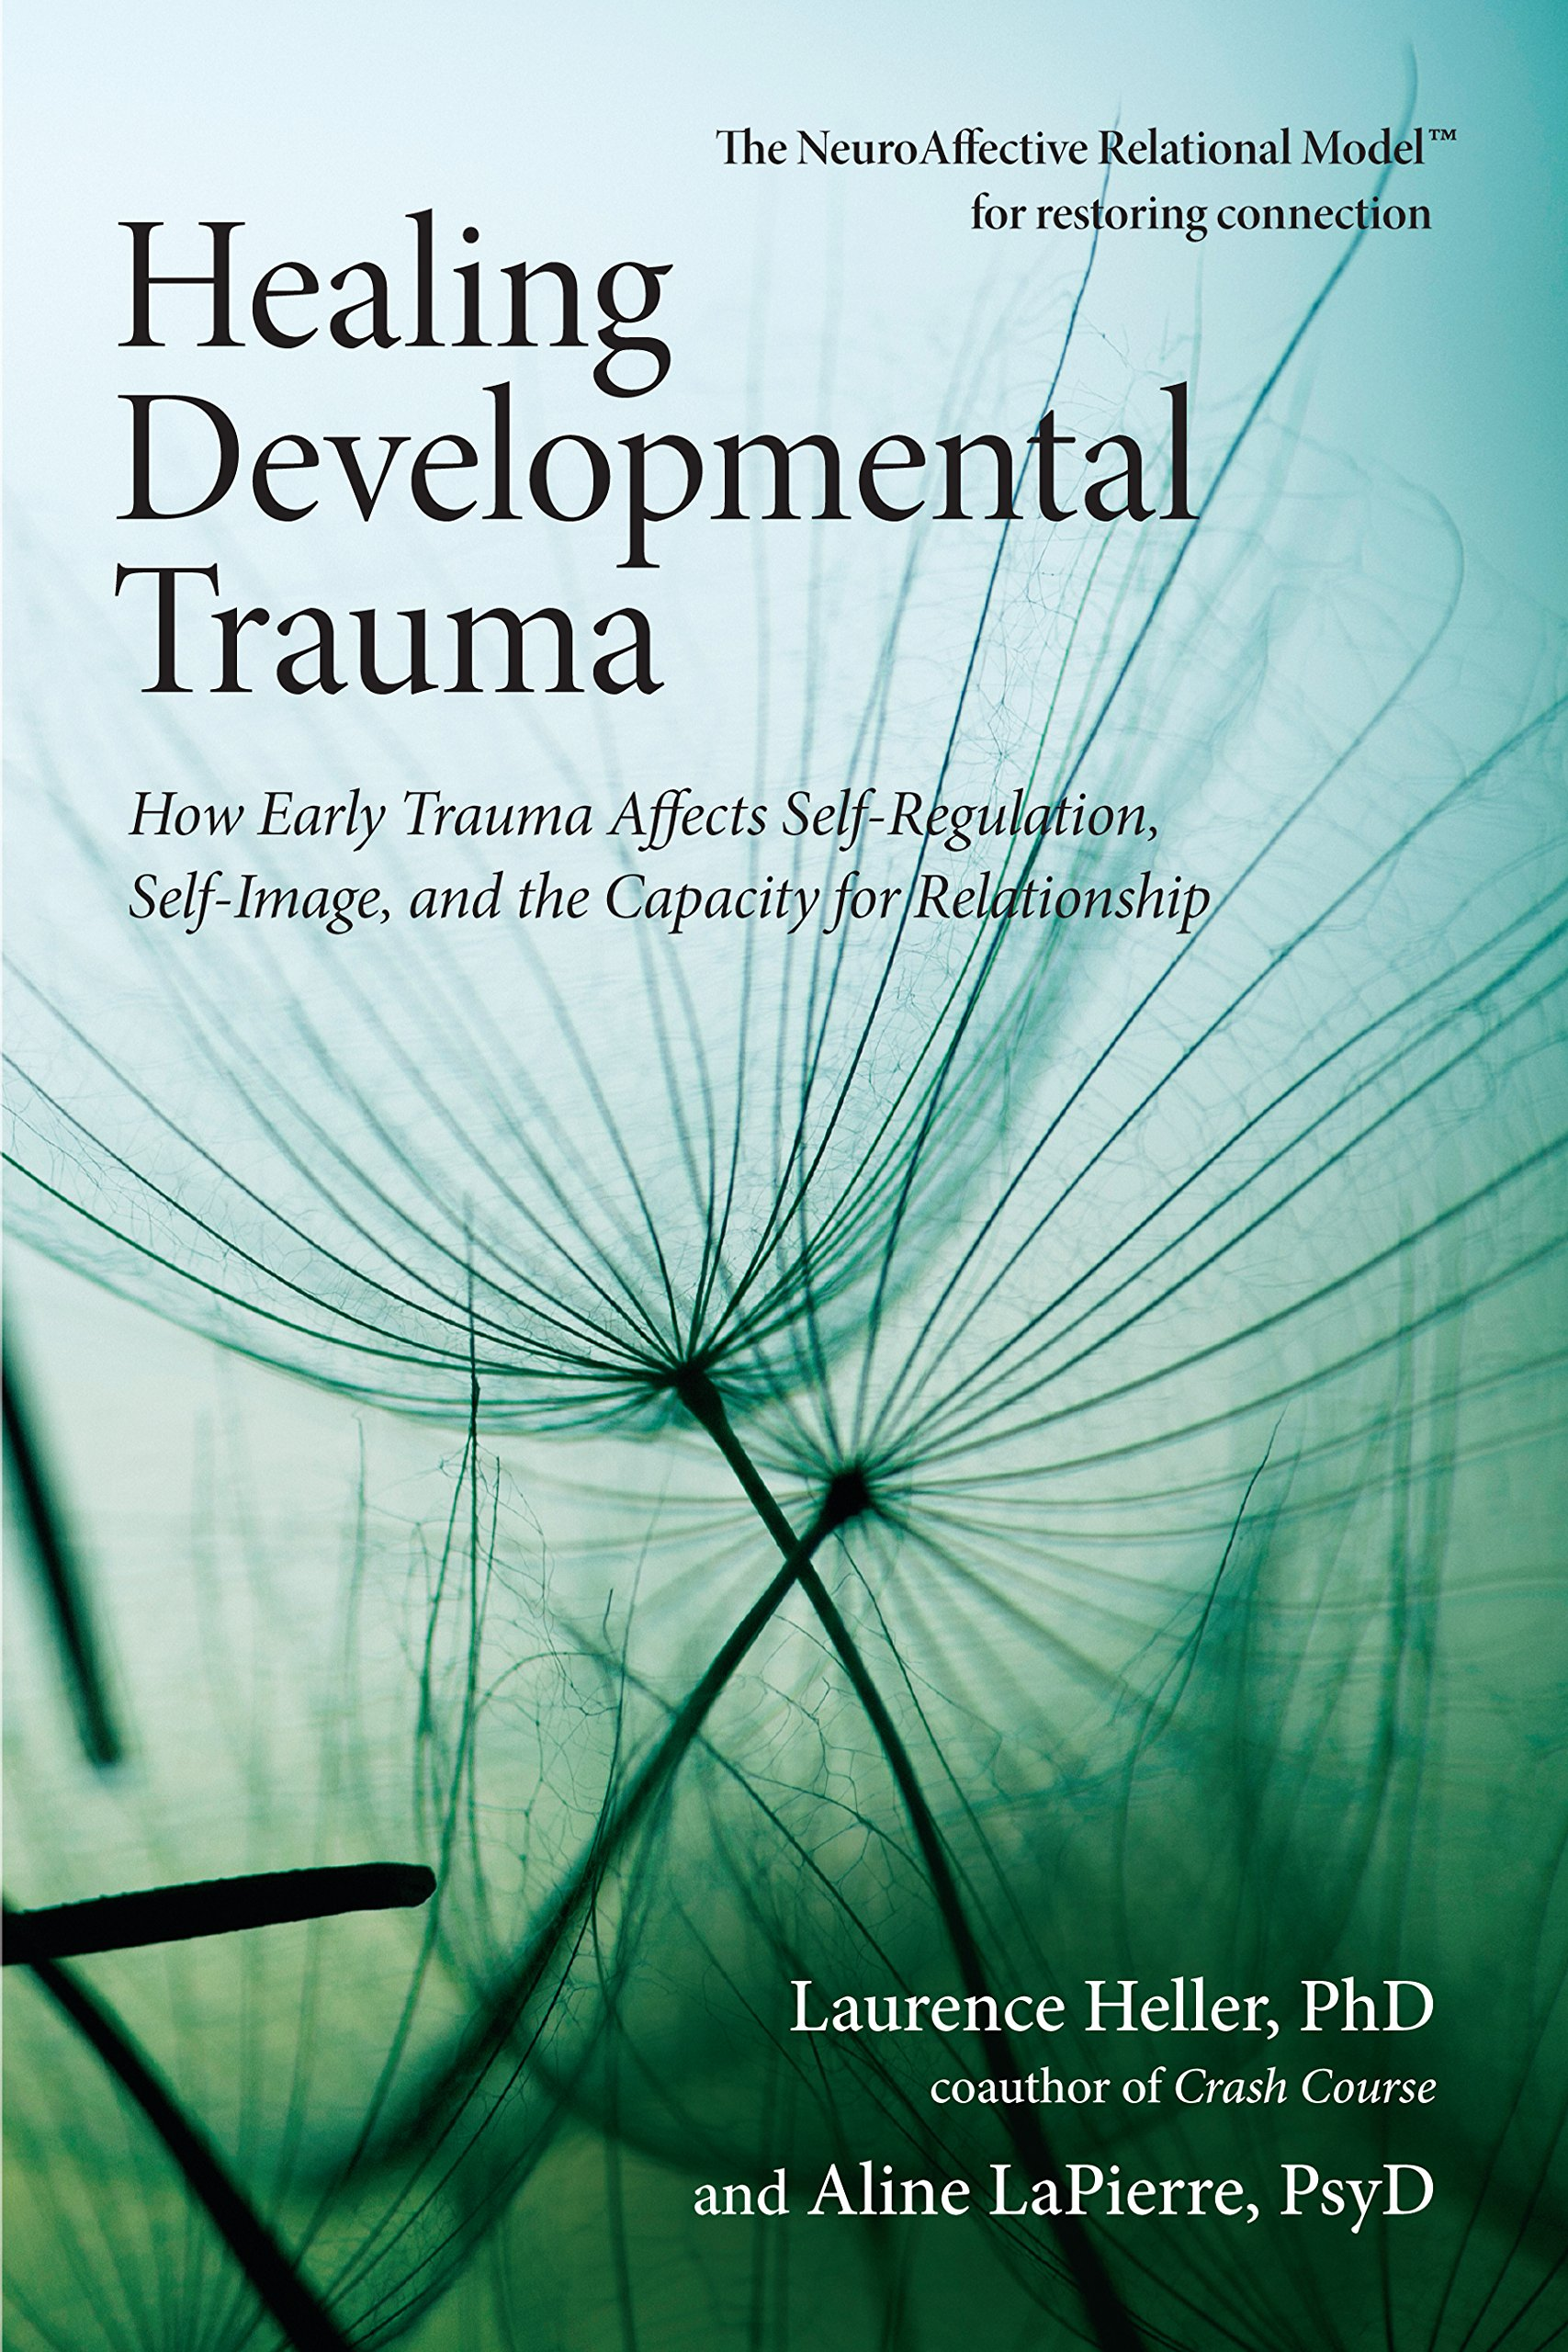 Download Healing Developmental Trauma: How Early Trauma Affects Self-Regulation, Self-Image, And The Capacity For Relationship 